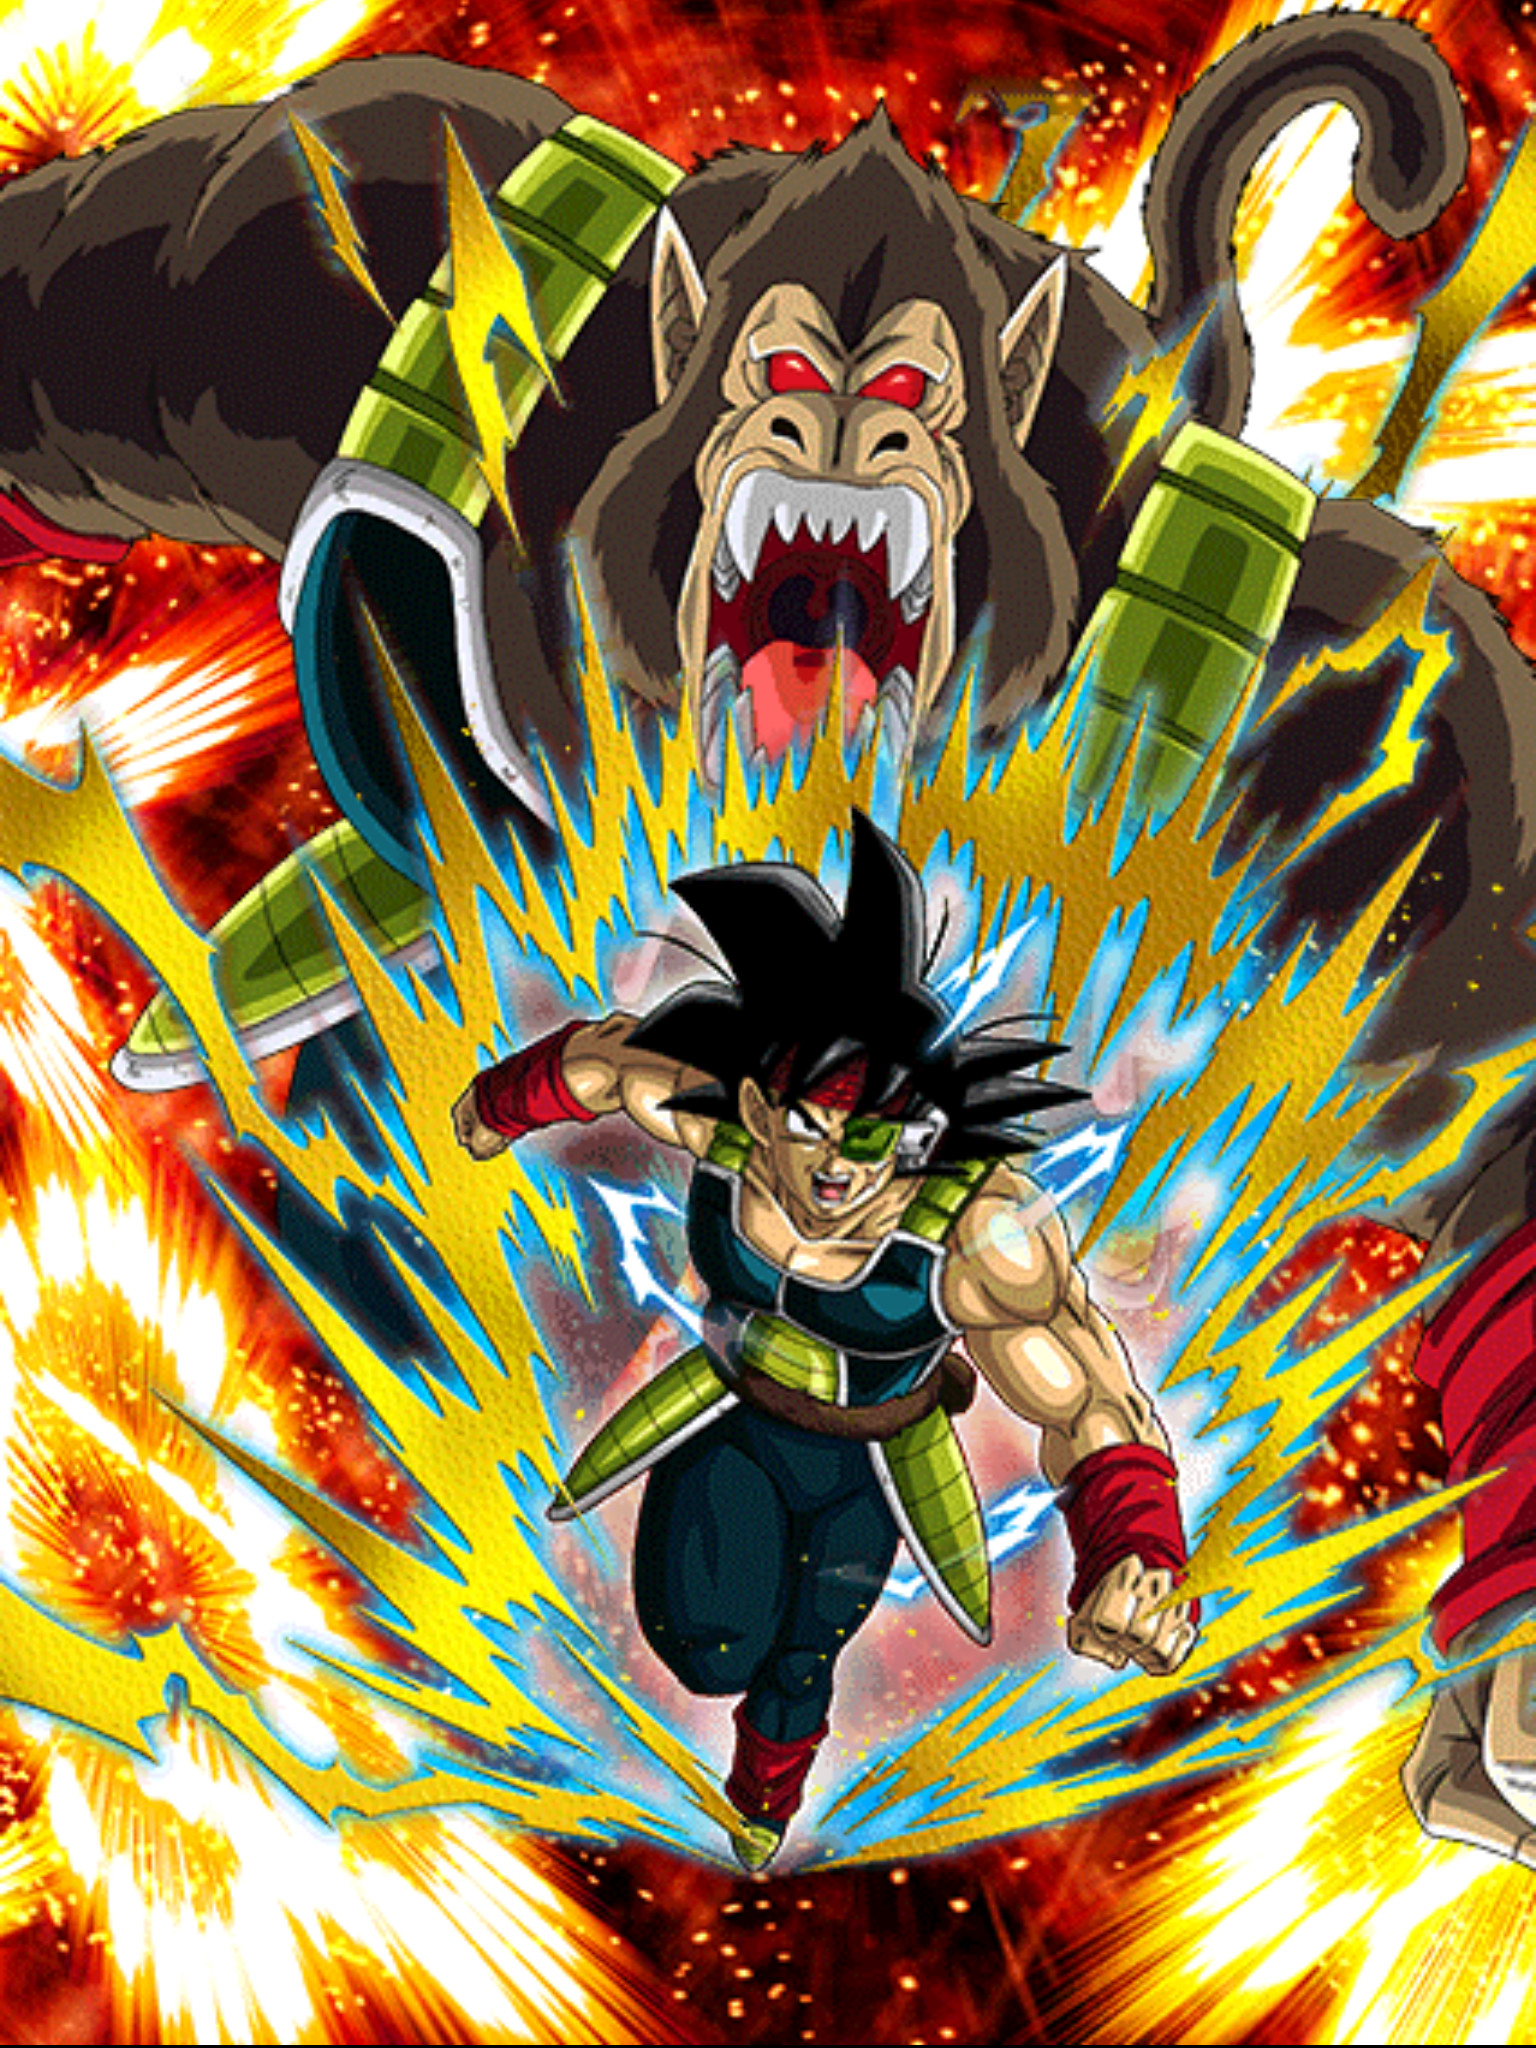 Dragon ball z bardock wallpaper 76 images - Images dragon ball z ...